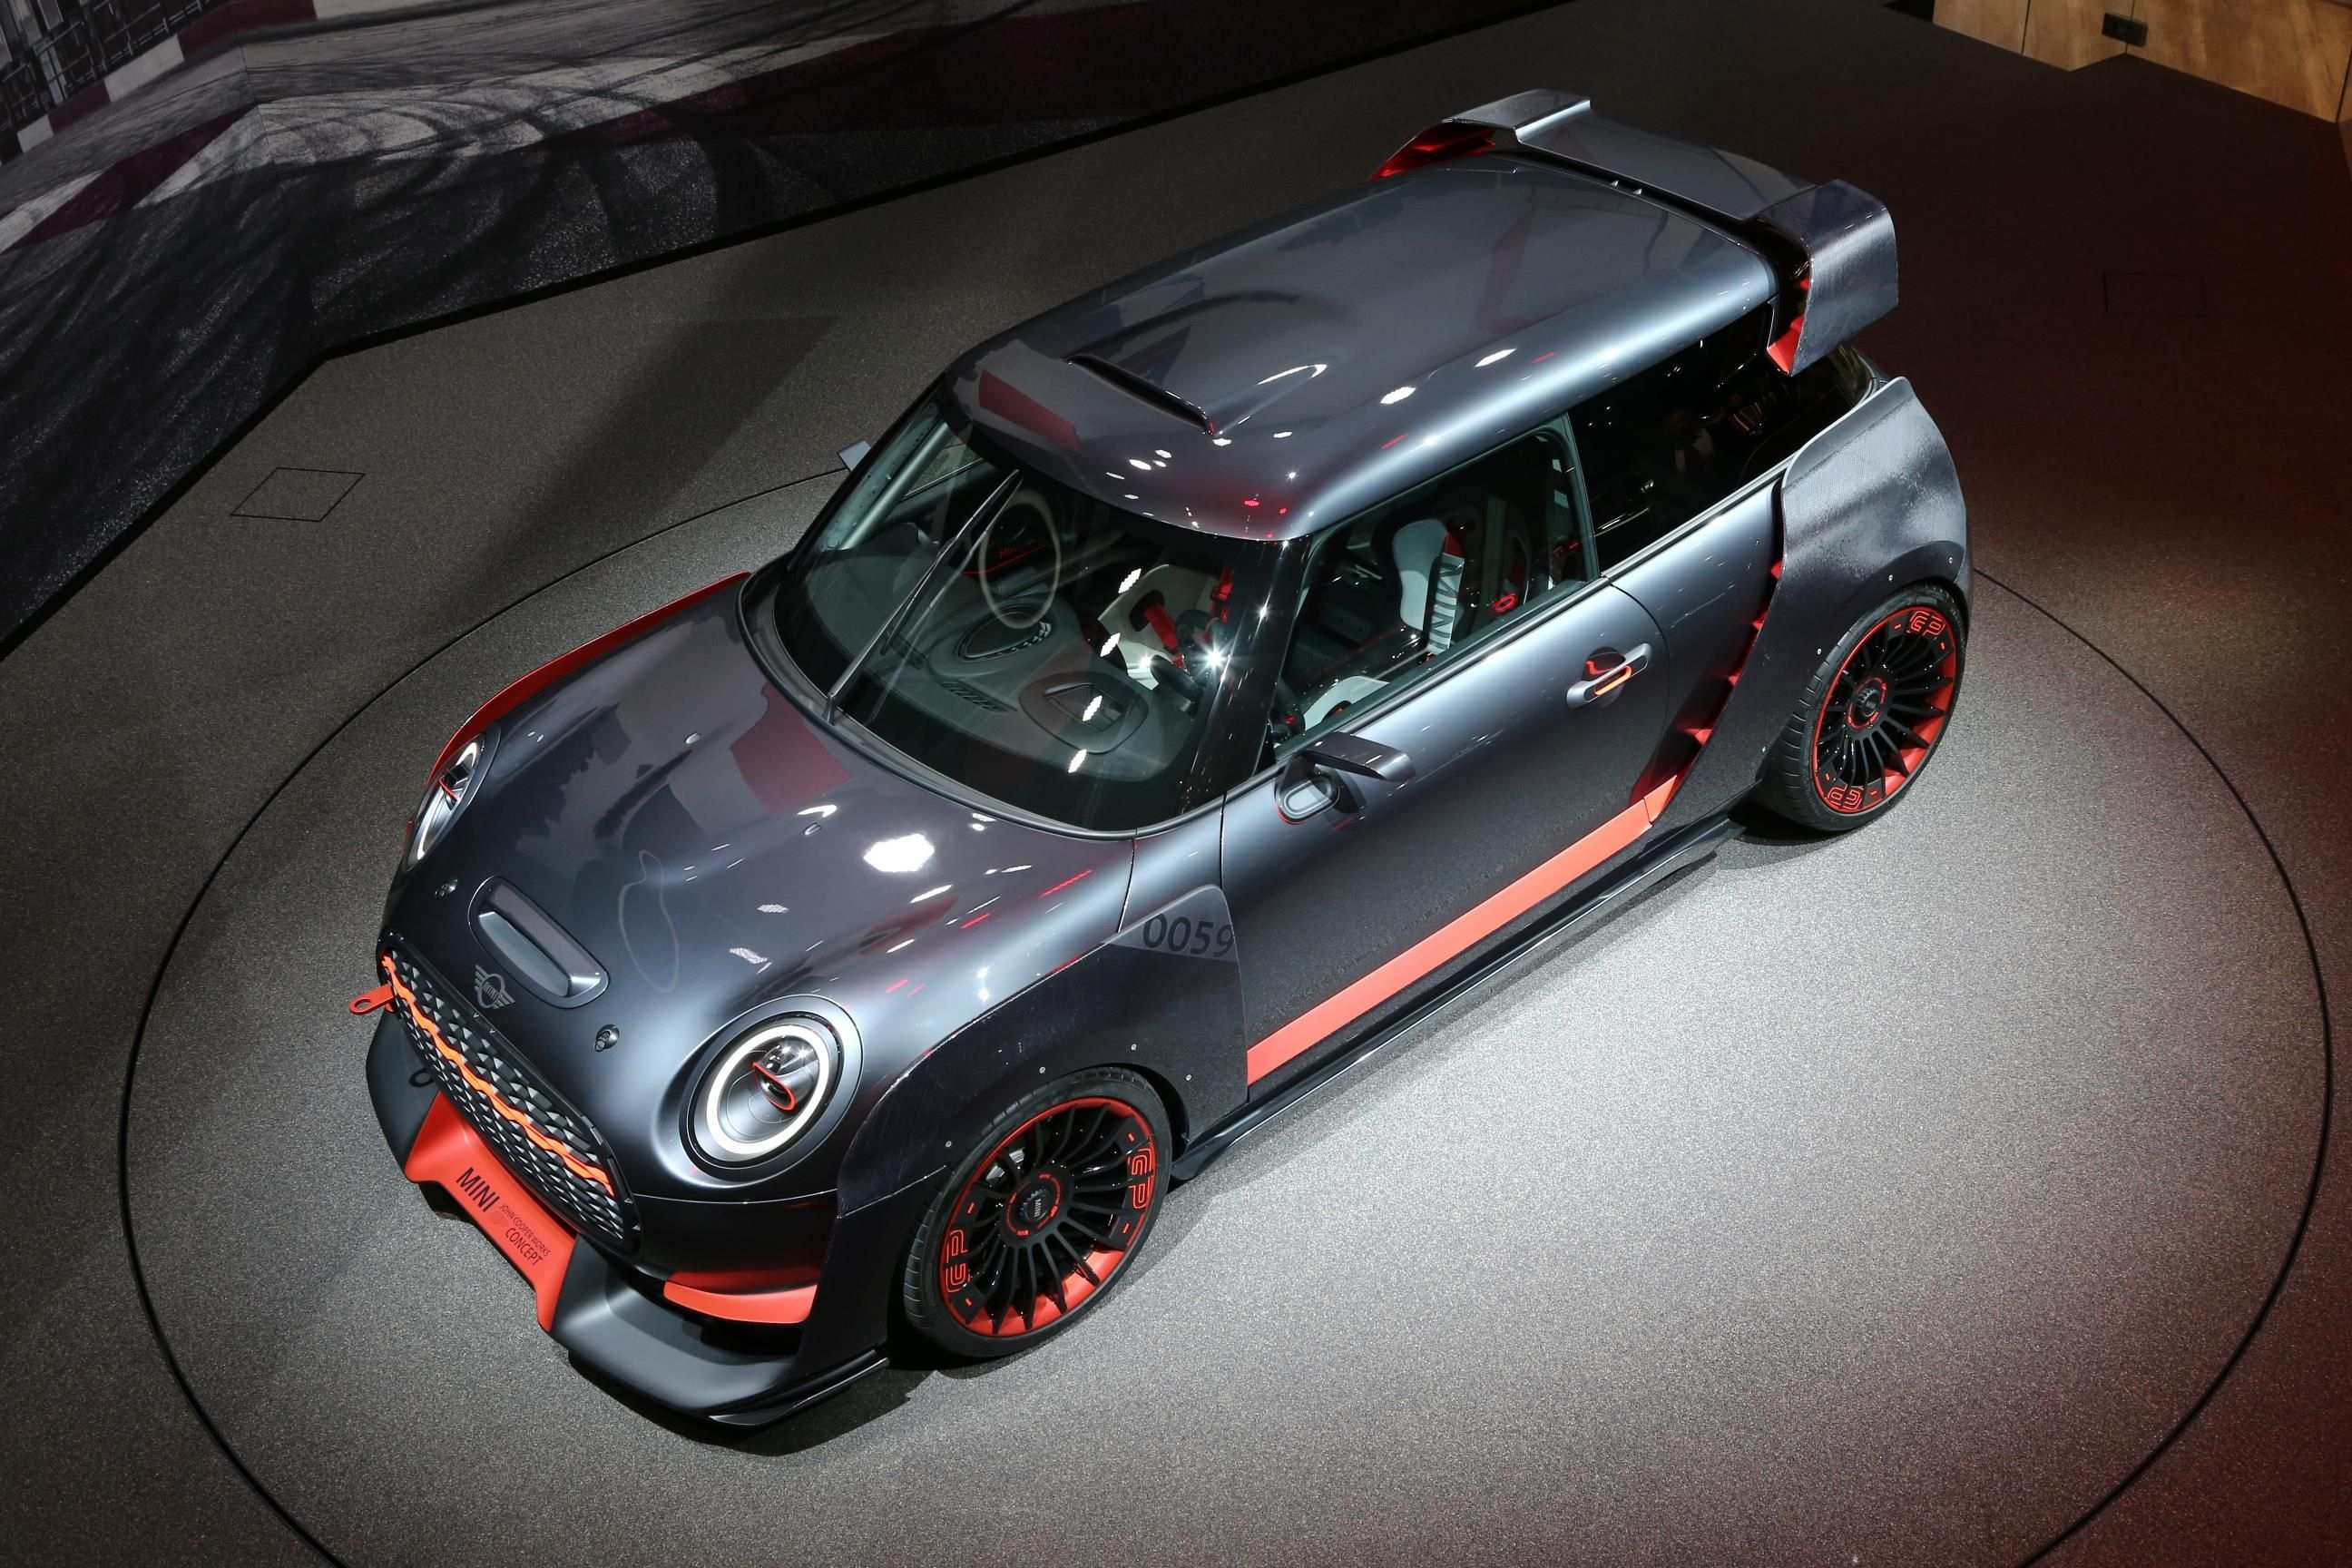 93 New 2020 Spy Shots Mini Countryman Exterior